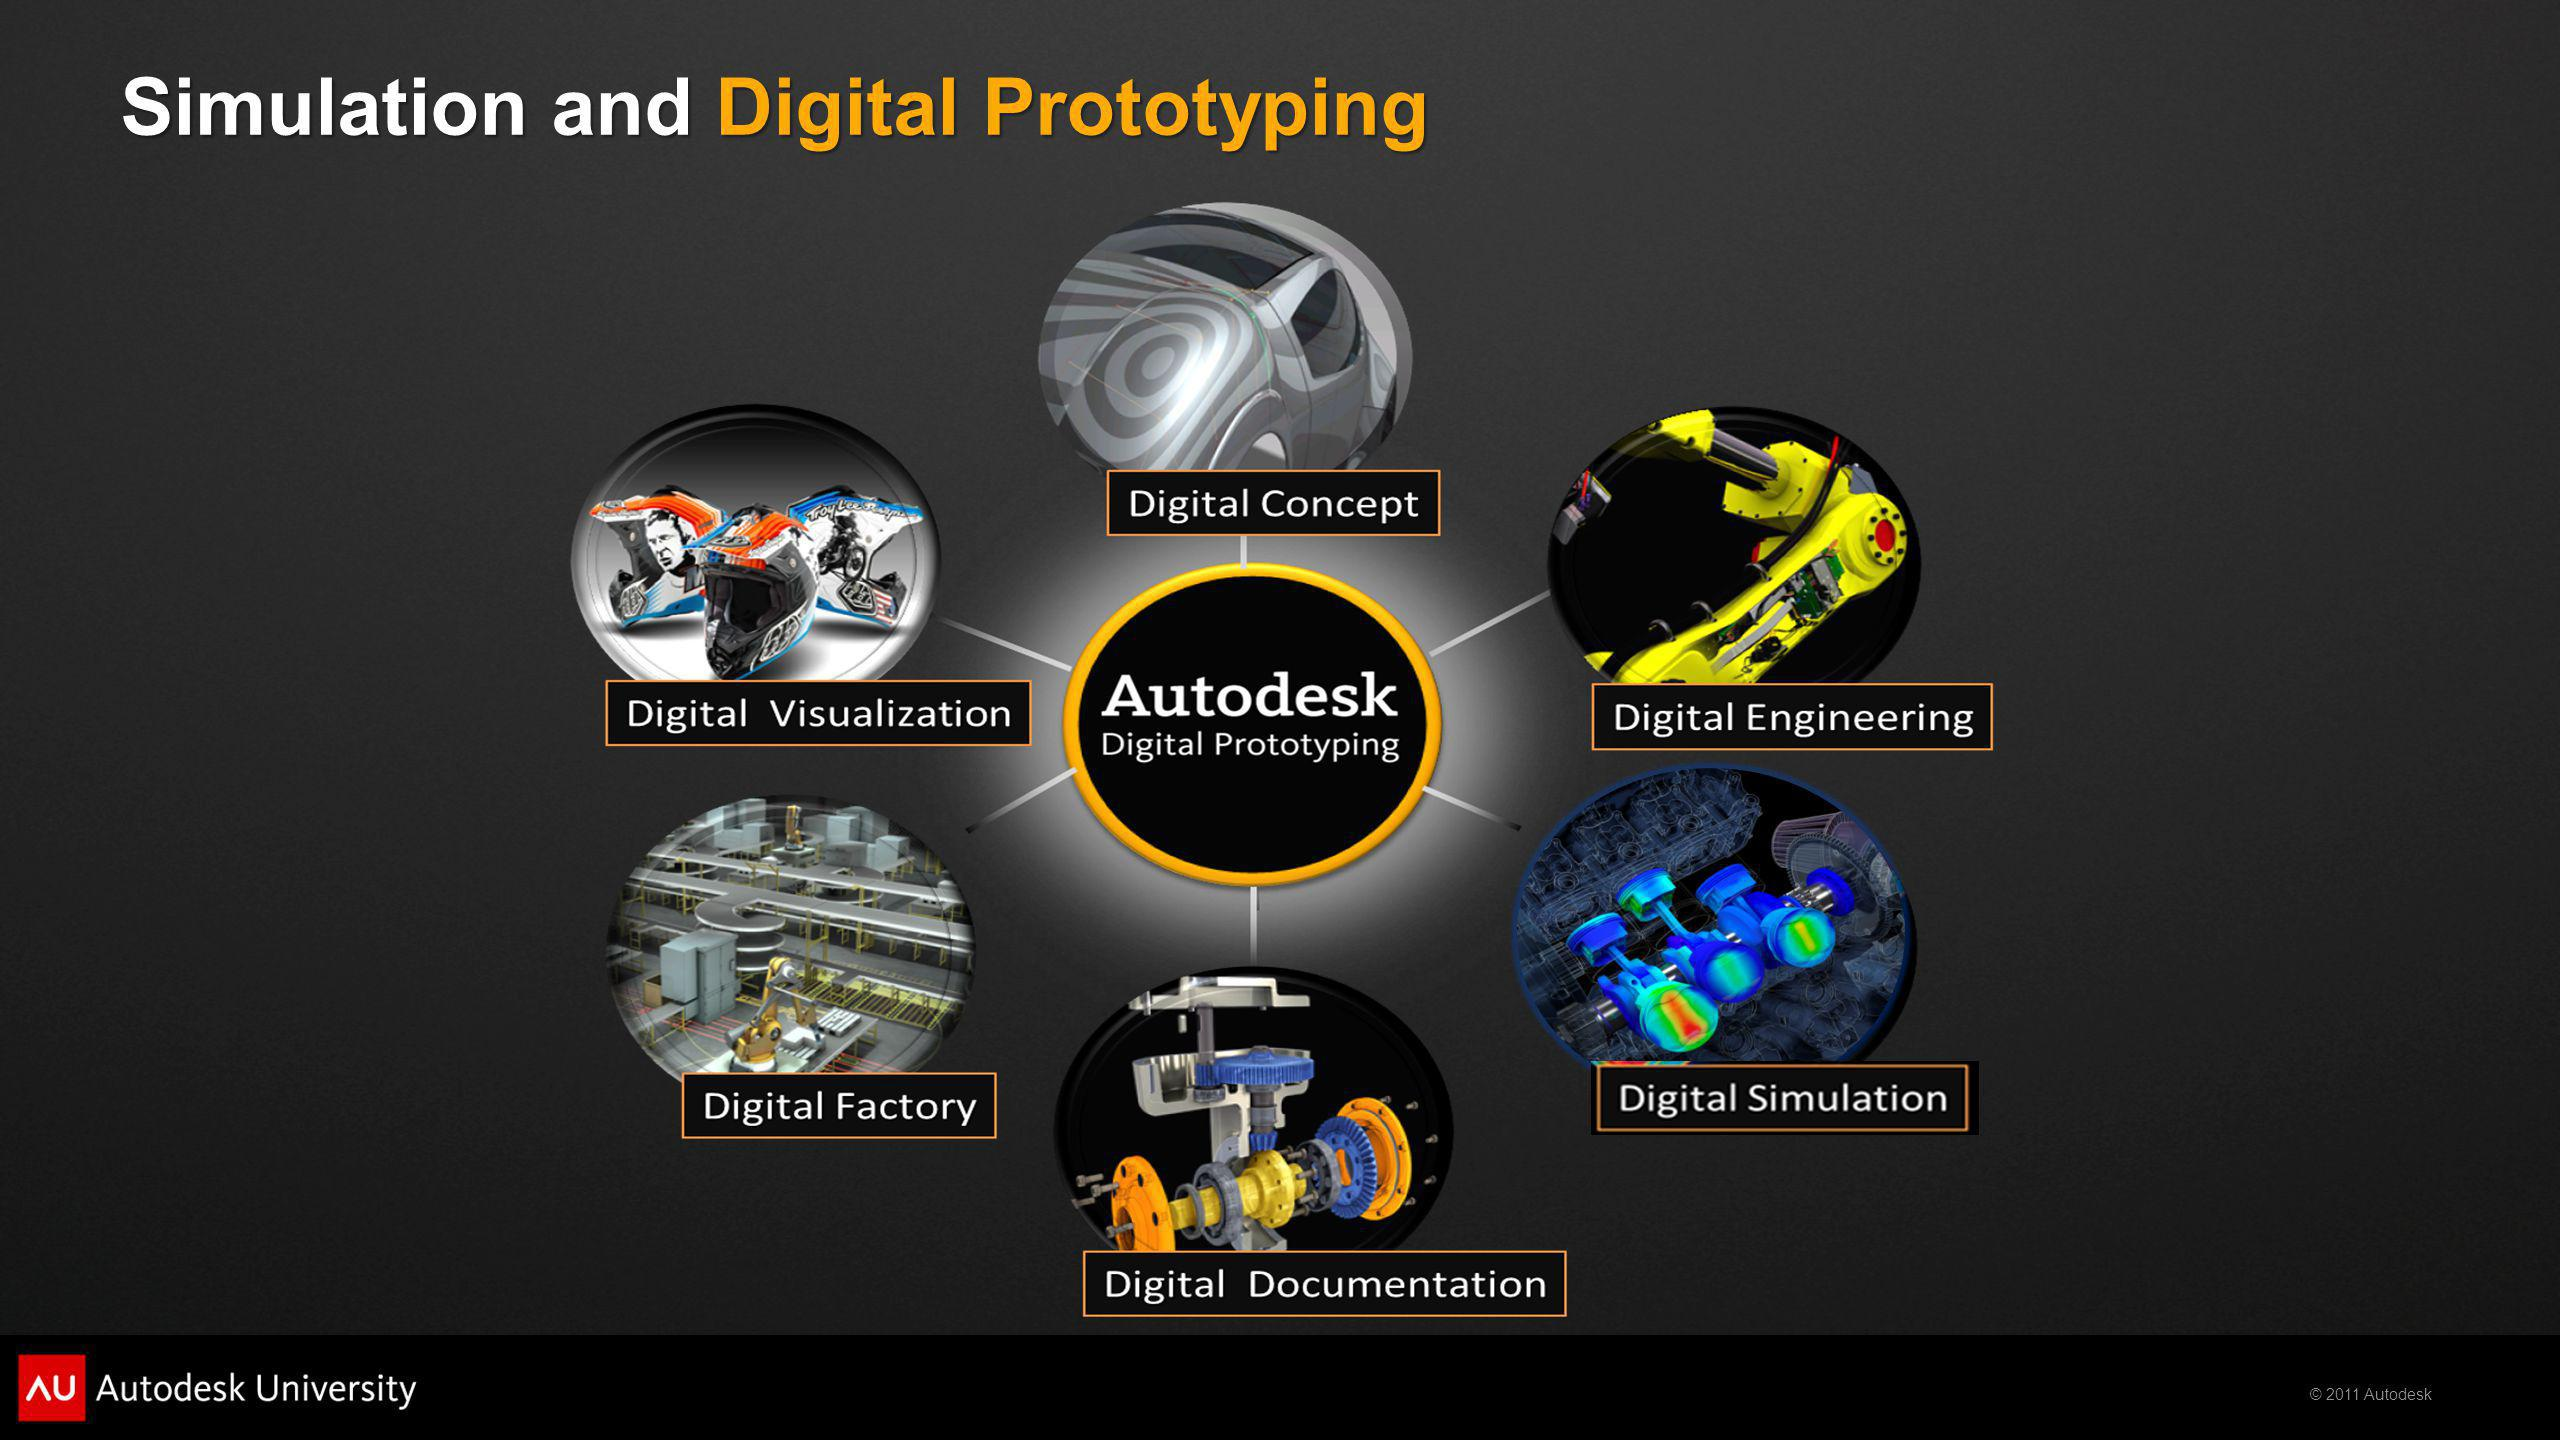 Simulation and Digital Prototyping